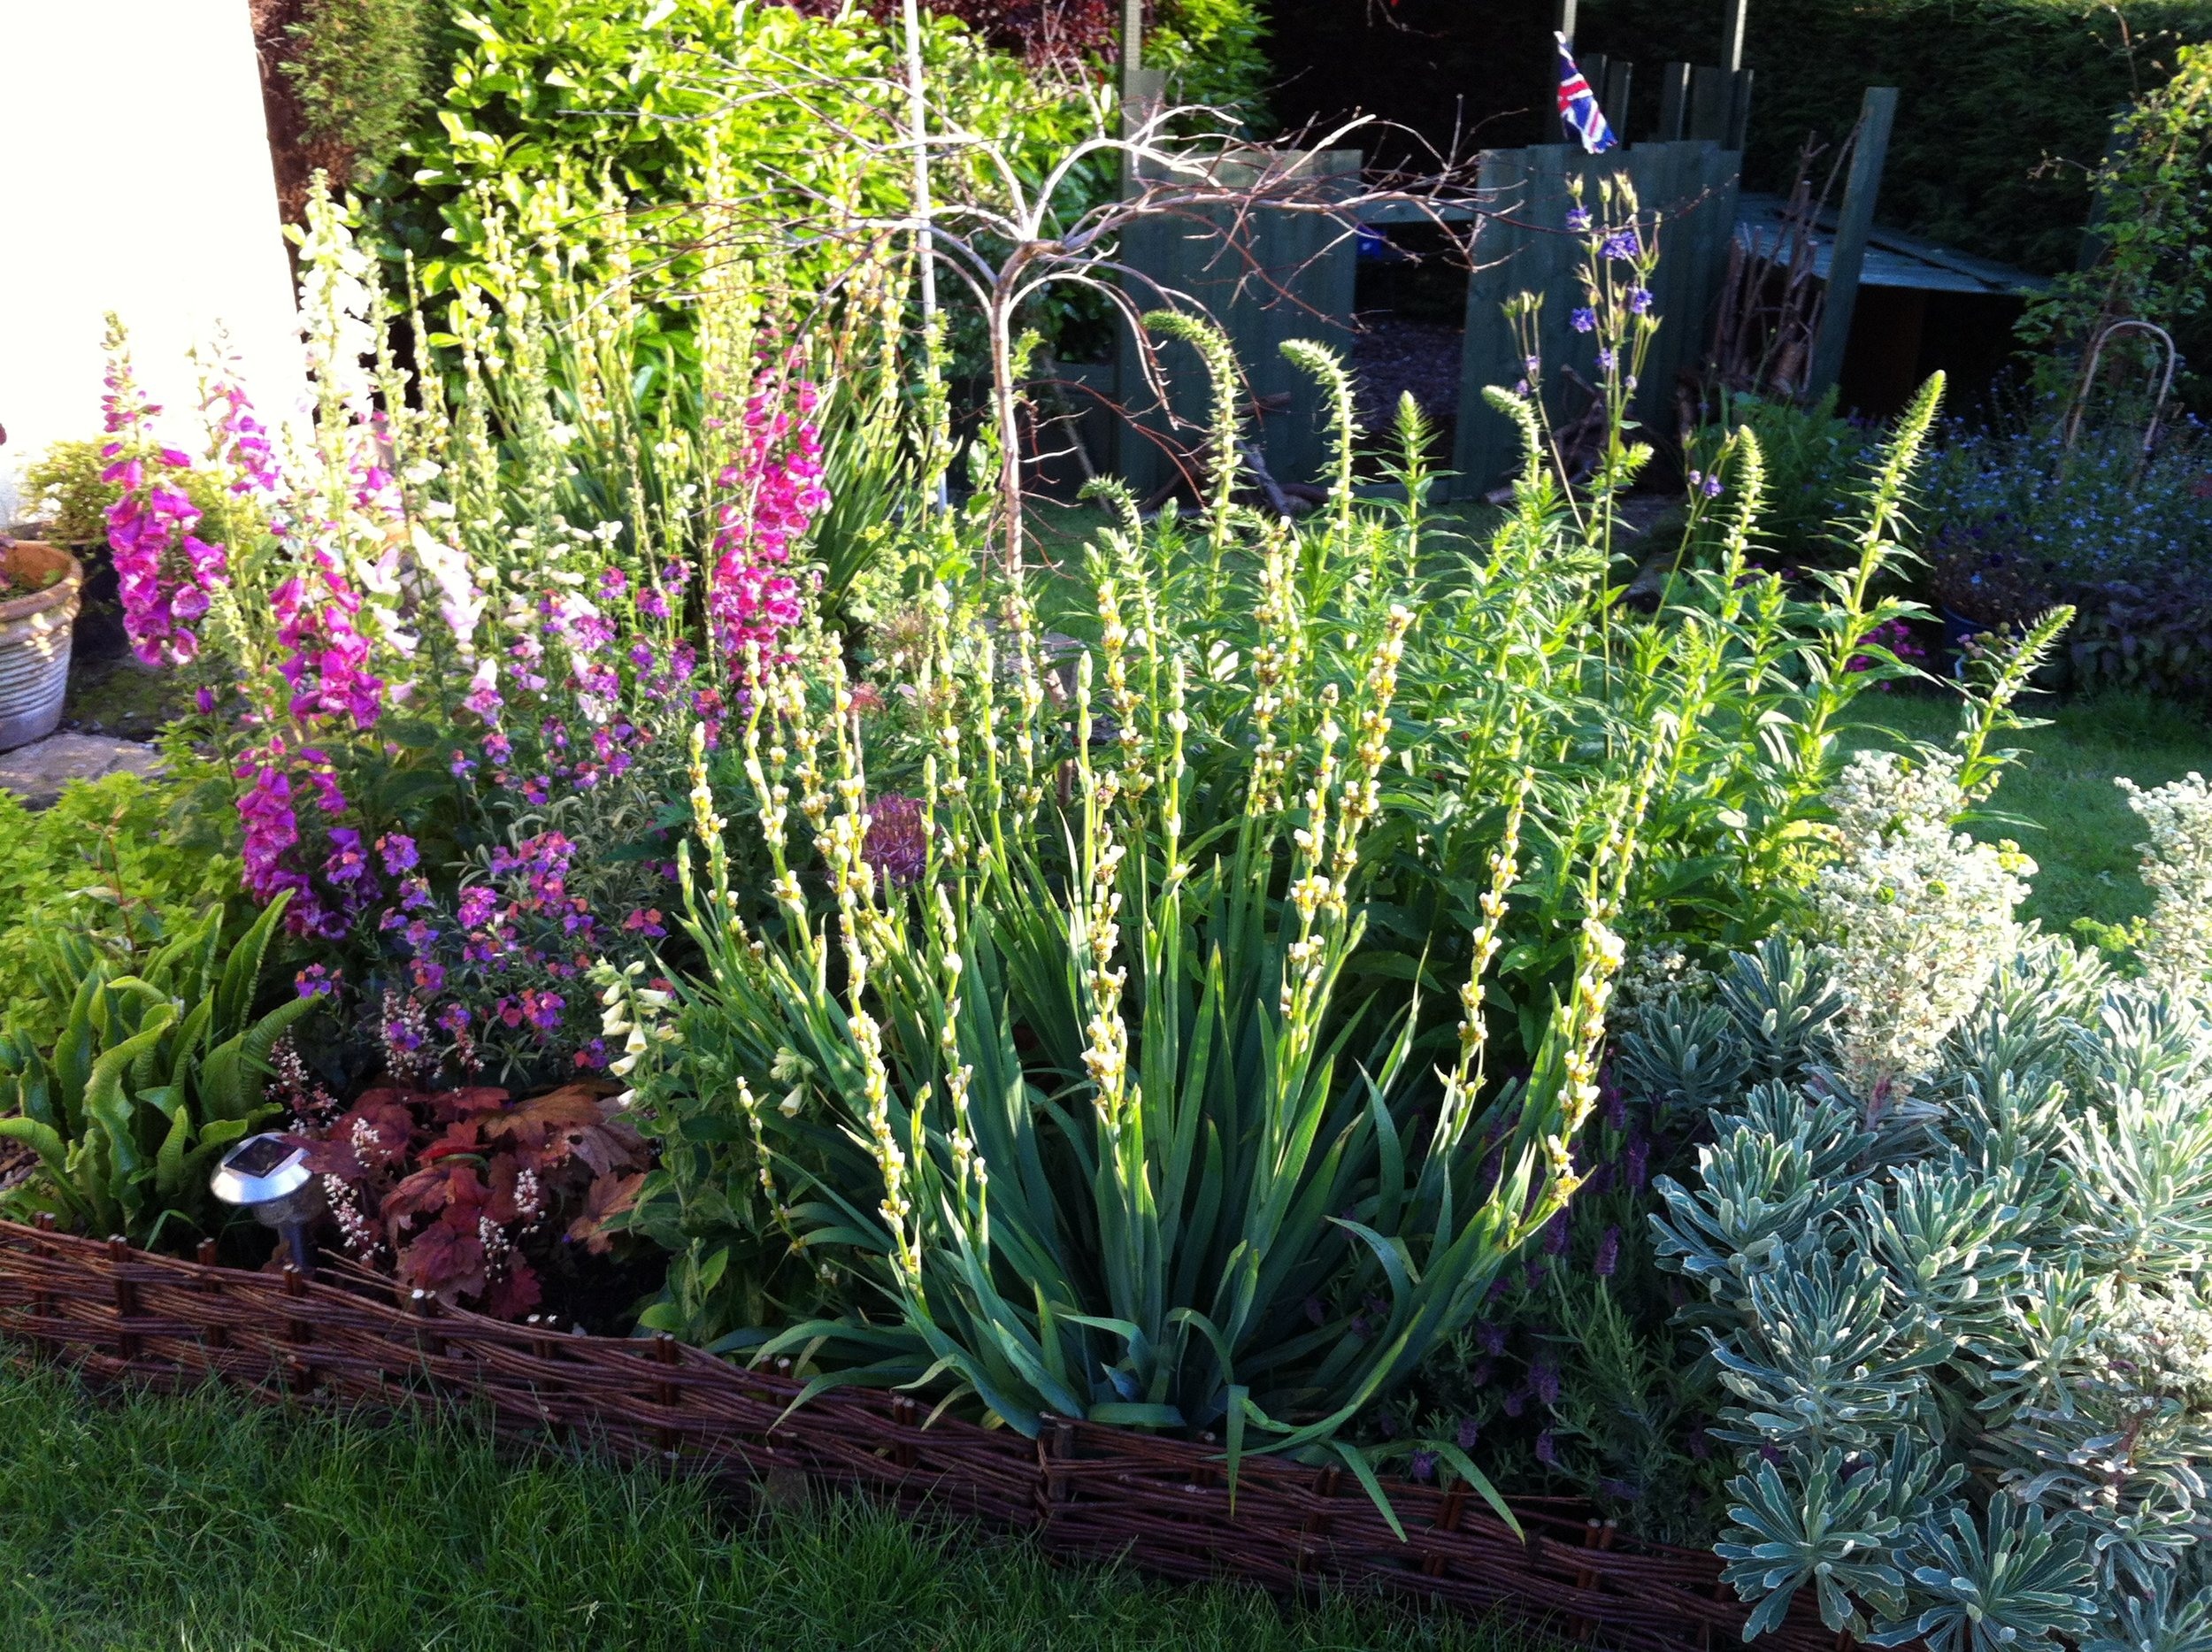 Inspiration from the garden….